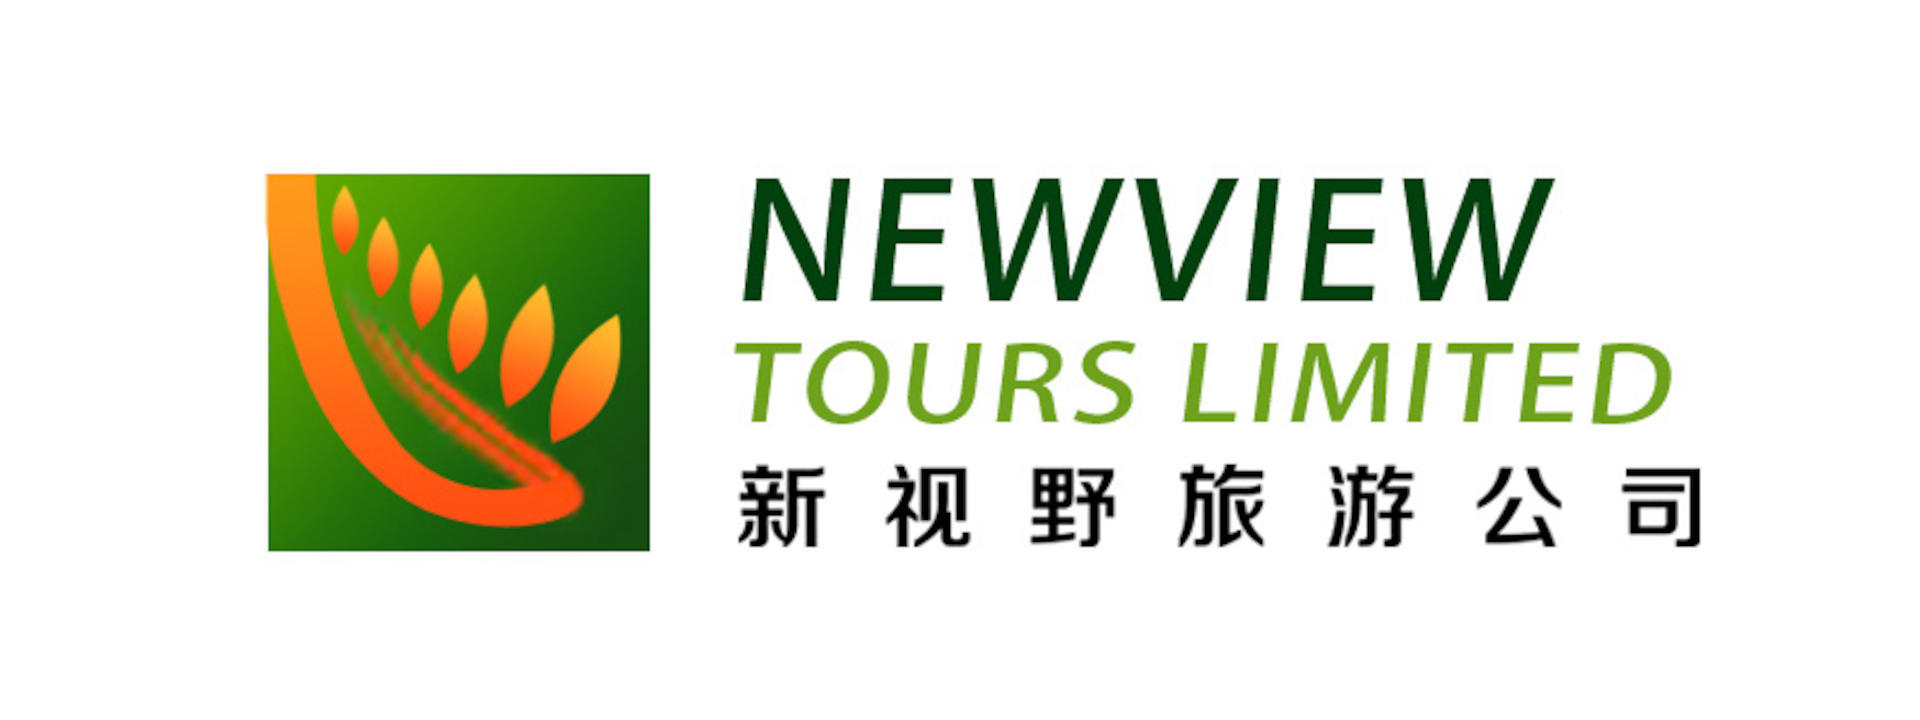 Logo: Newview Tours Limited